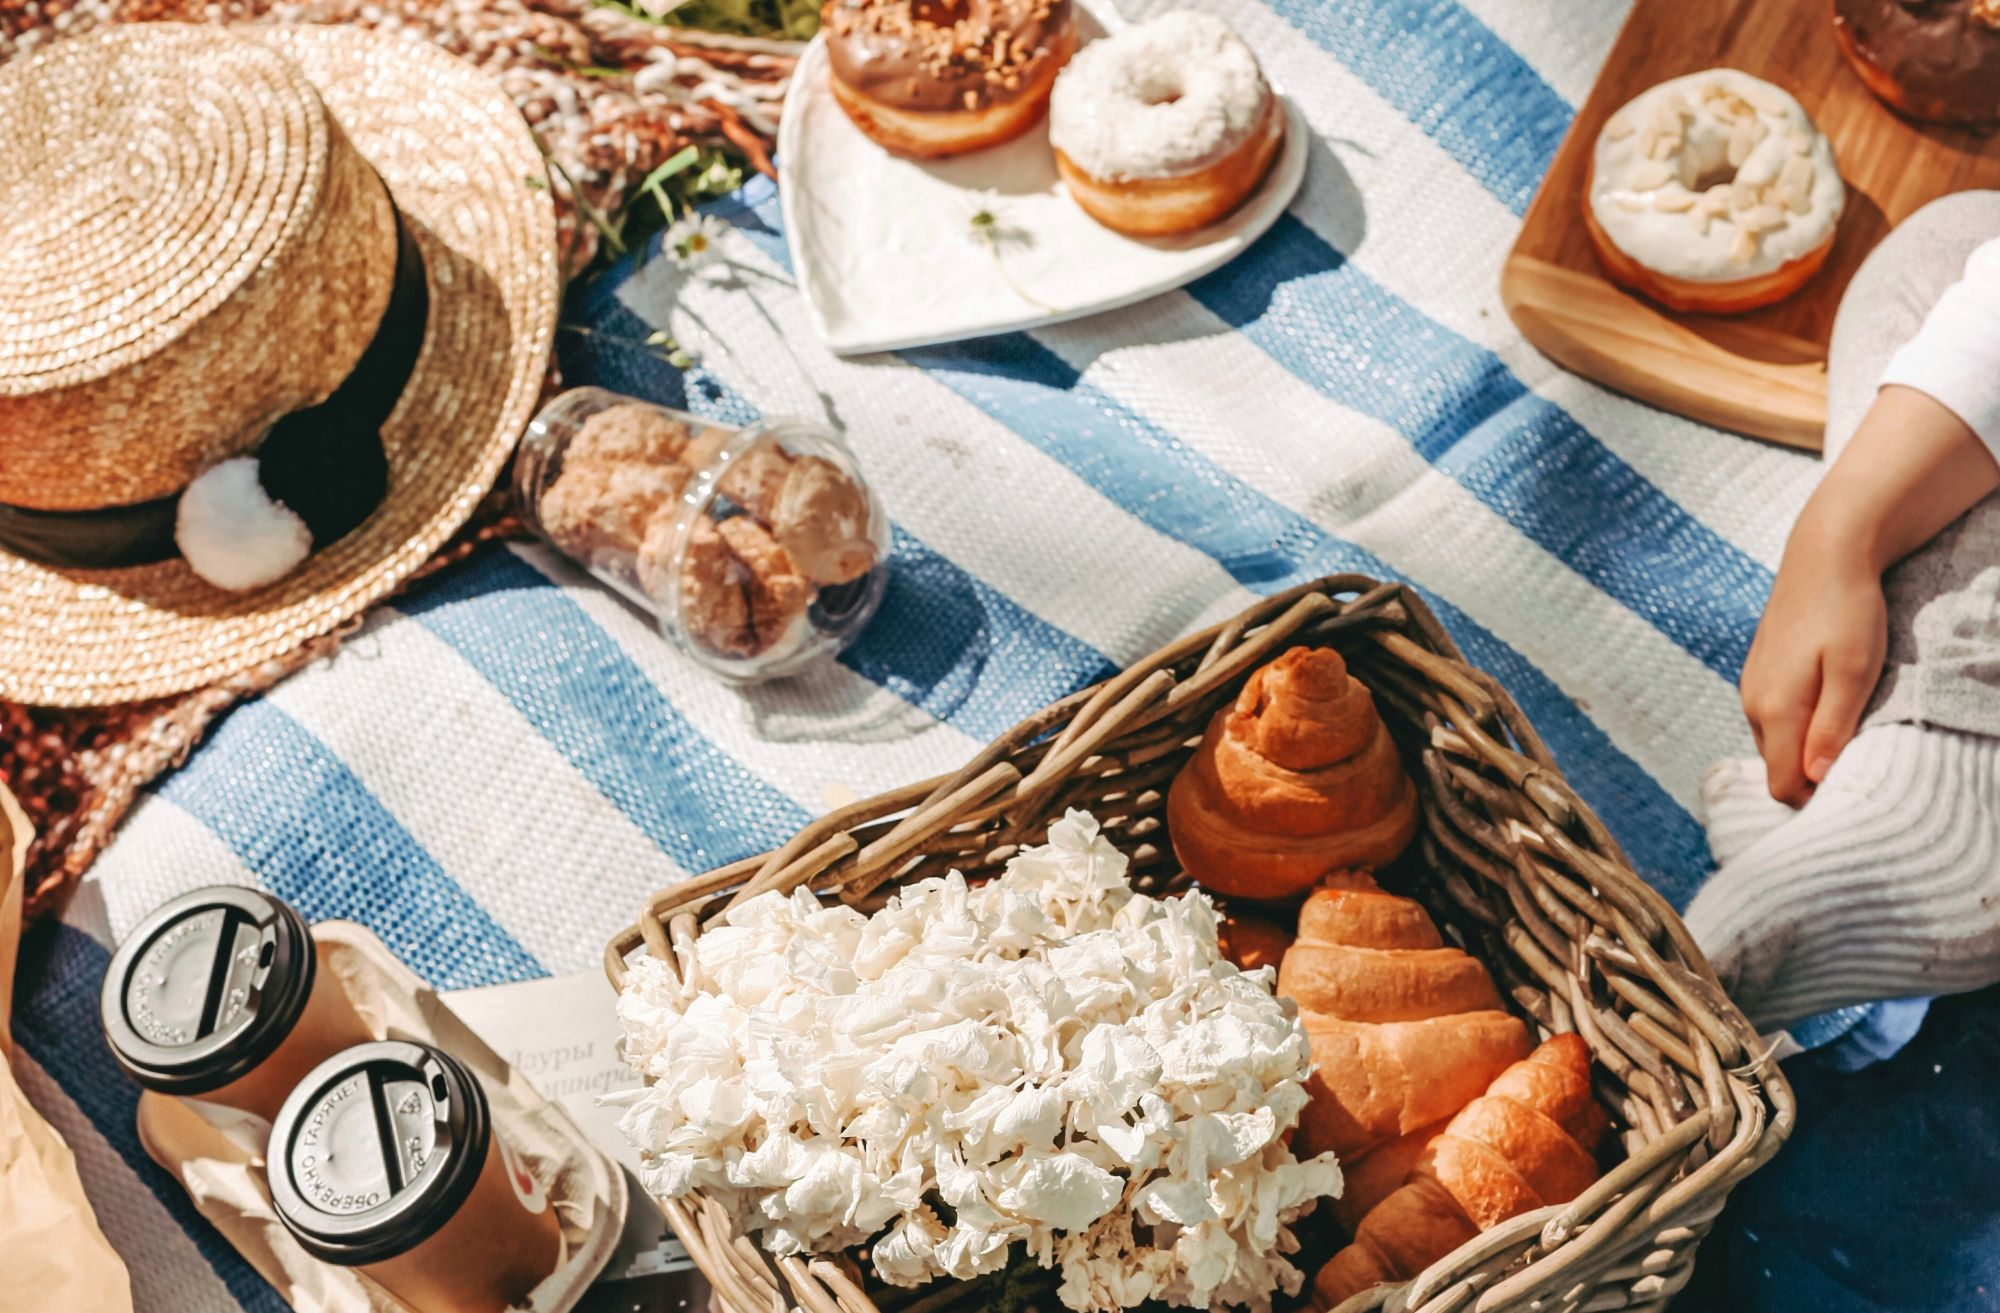 How To Prep A Picnic In Your Backyard In Malaysia